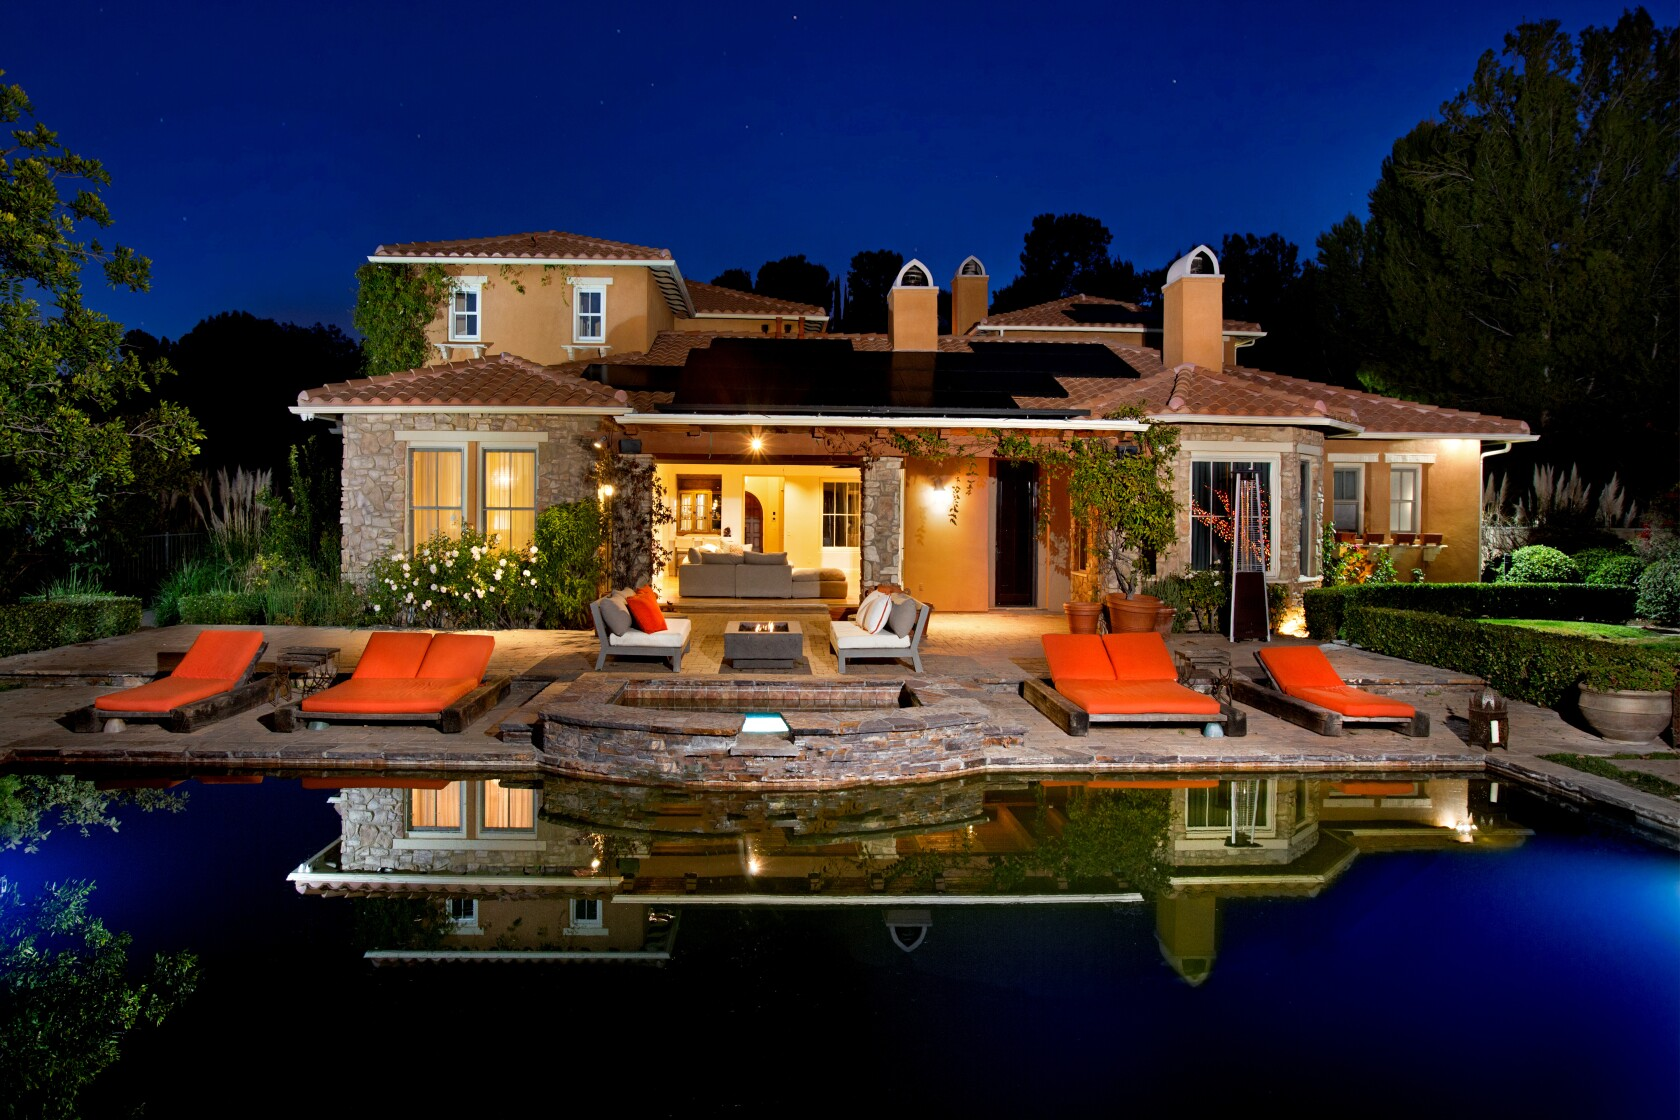 Hot Property: French Montana looks to double his money on Hidden Hills home